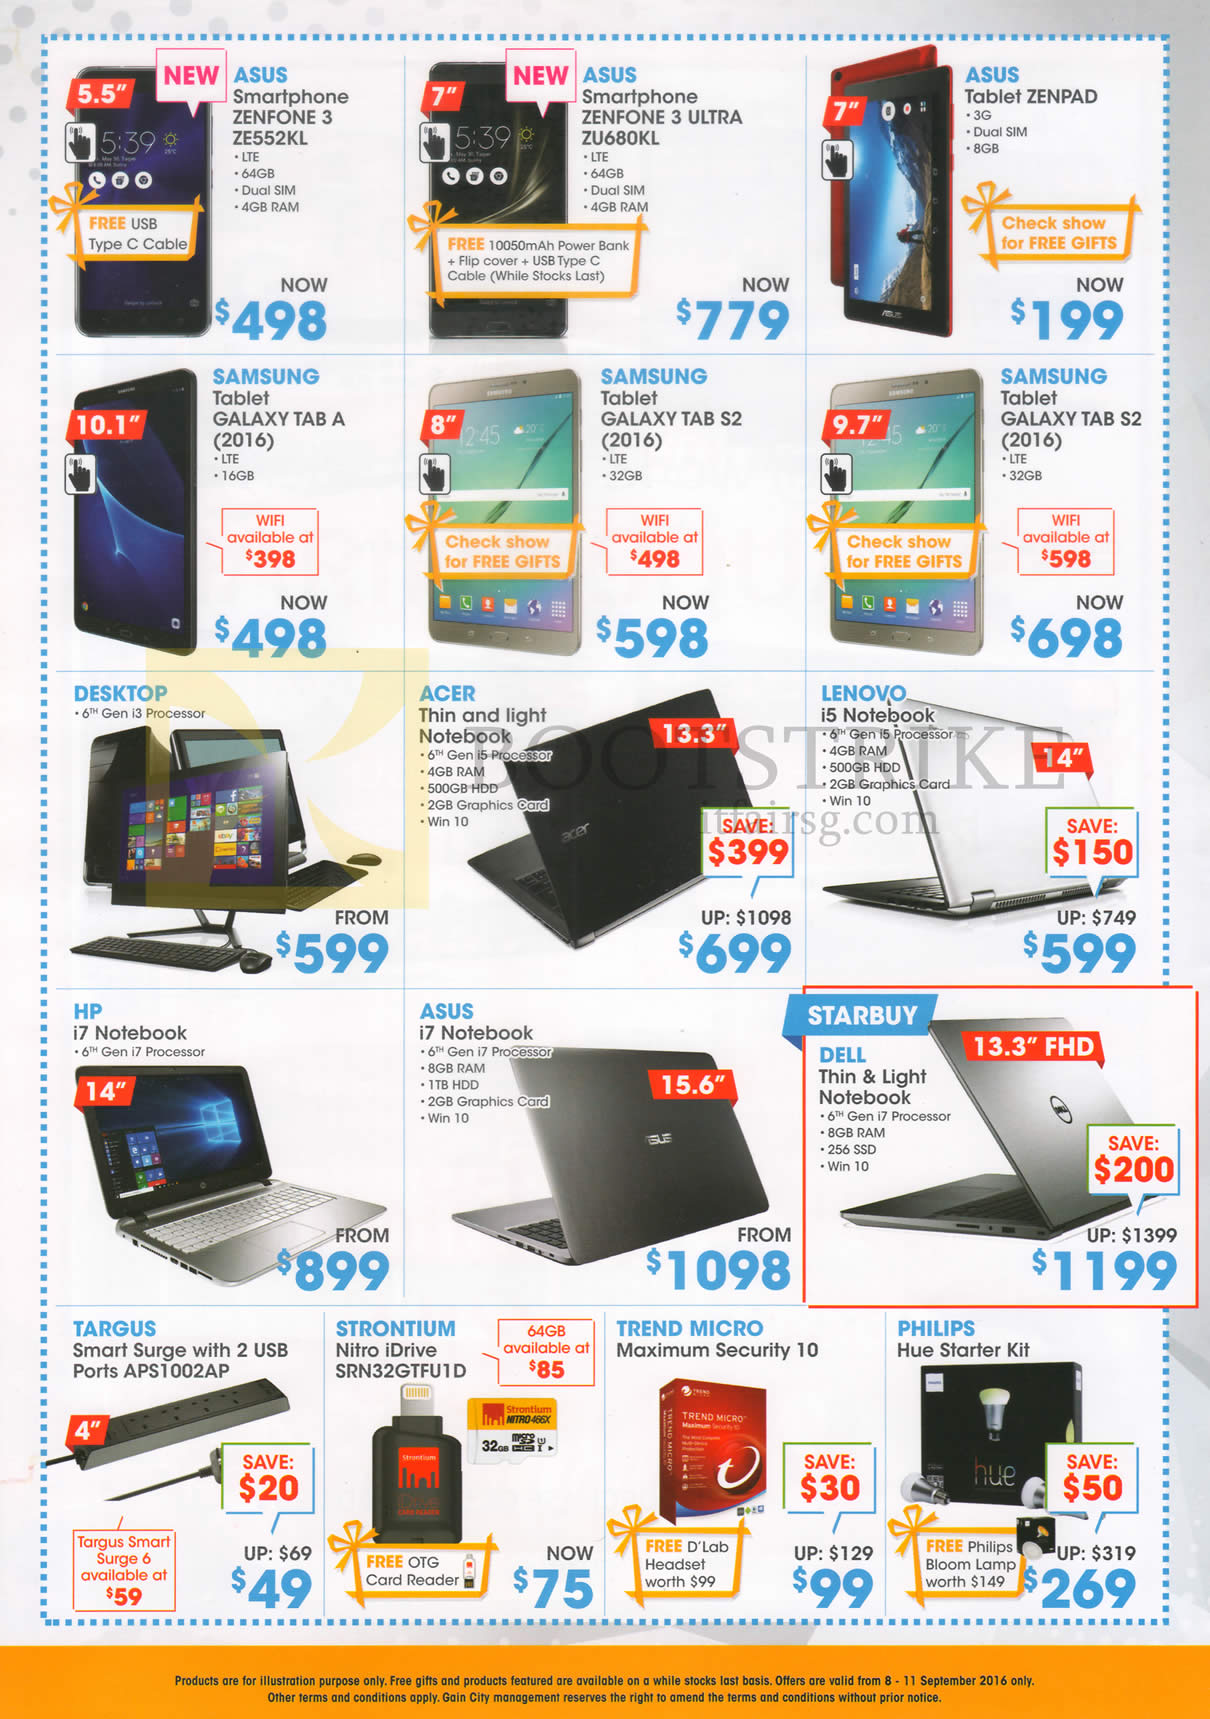 COMEX 2016 price list image brochure of Gain City Notebooks, Desktop PC, ASUS Zenfone, Samsing, Acer, HP, Lenovo, Dell, Targus, Strontium, Trend Micro